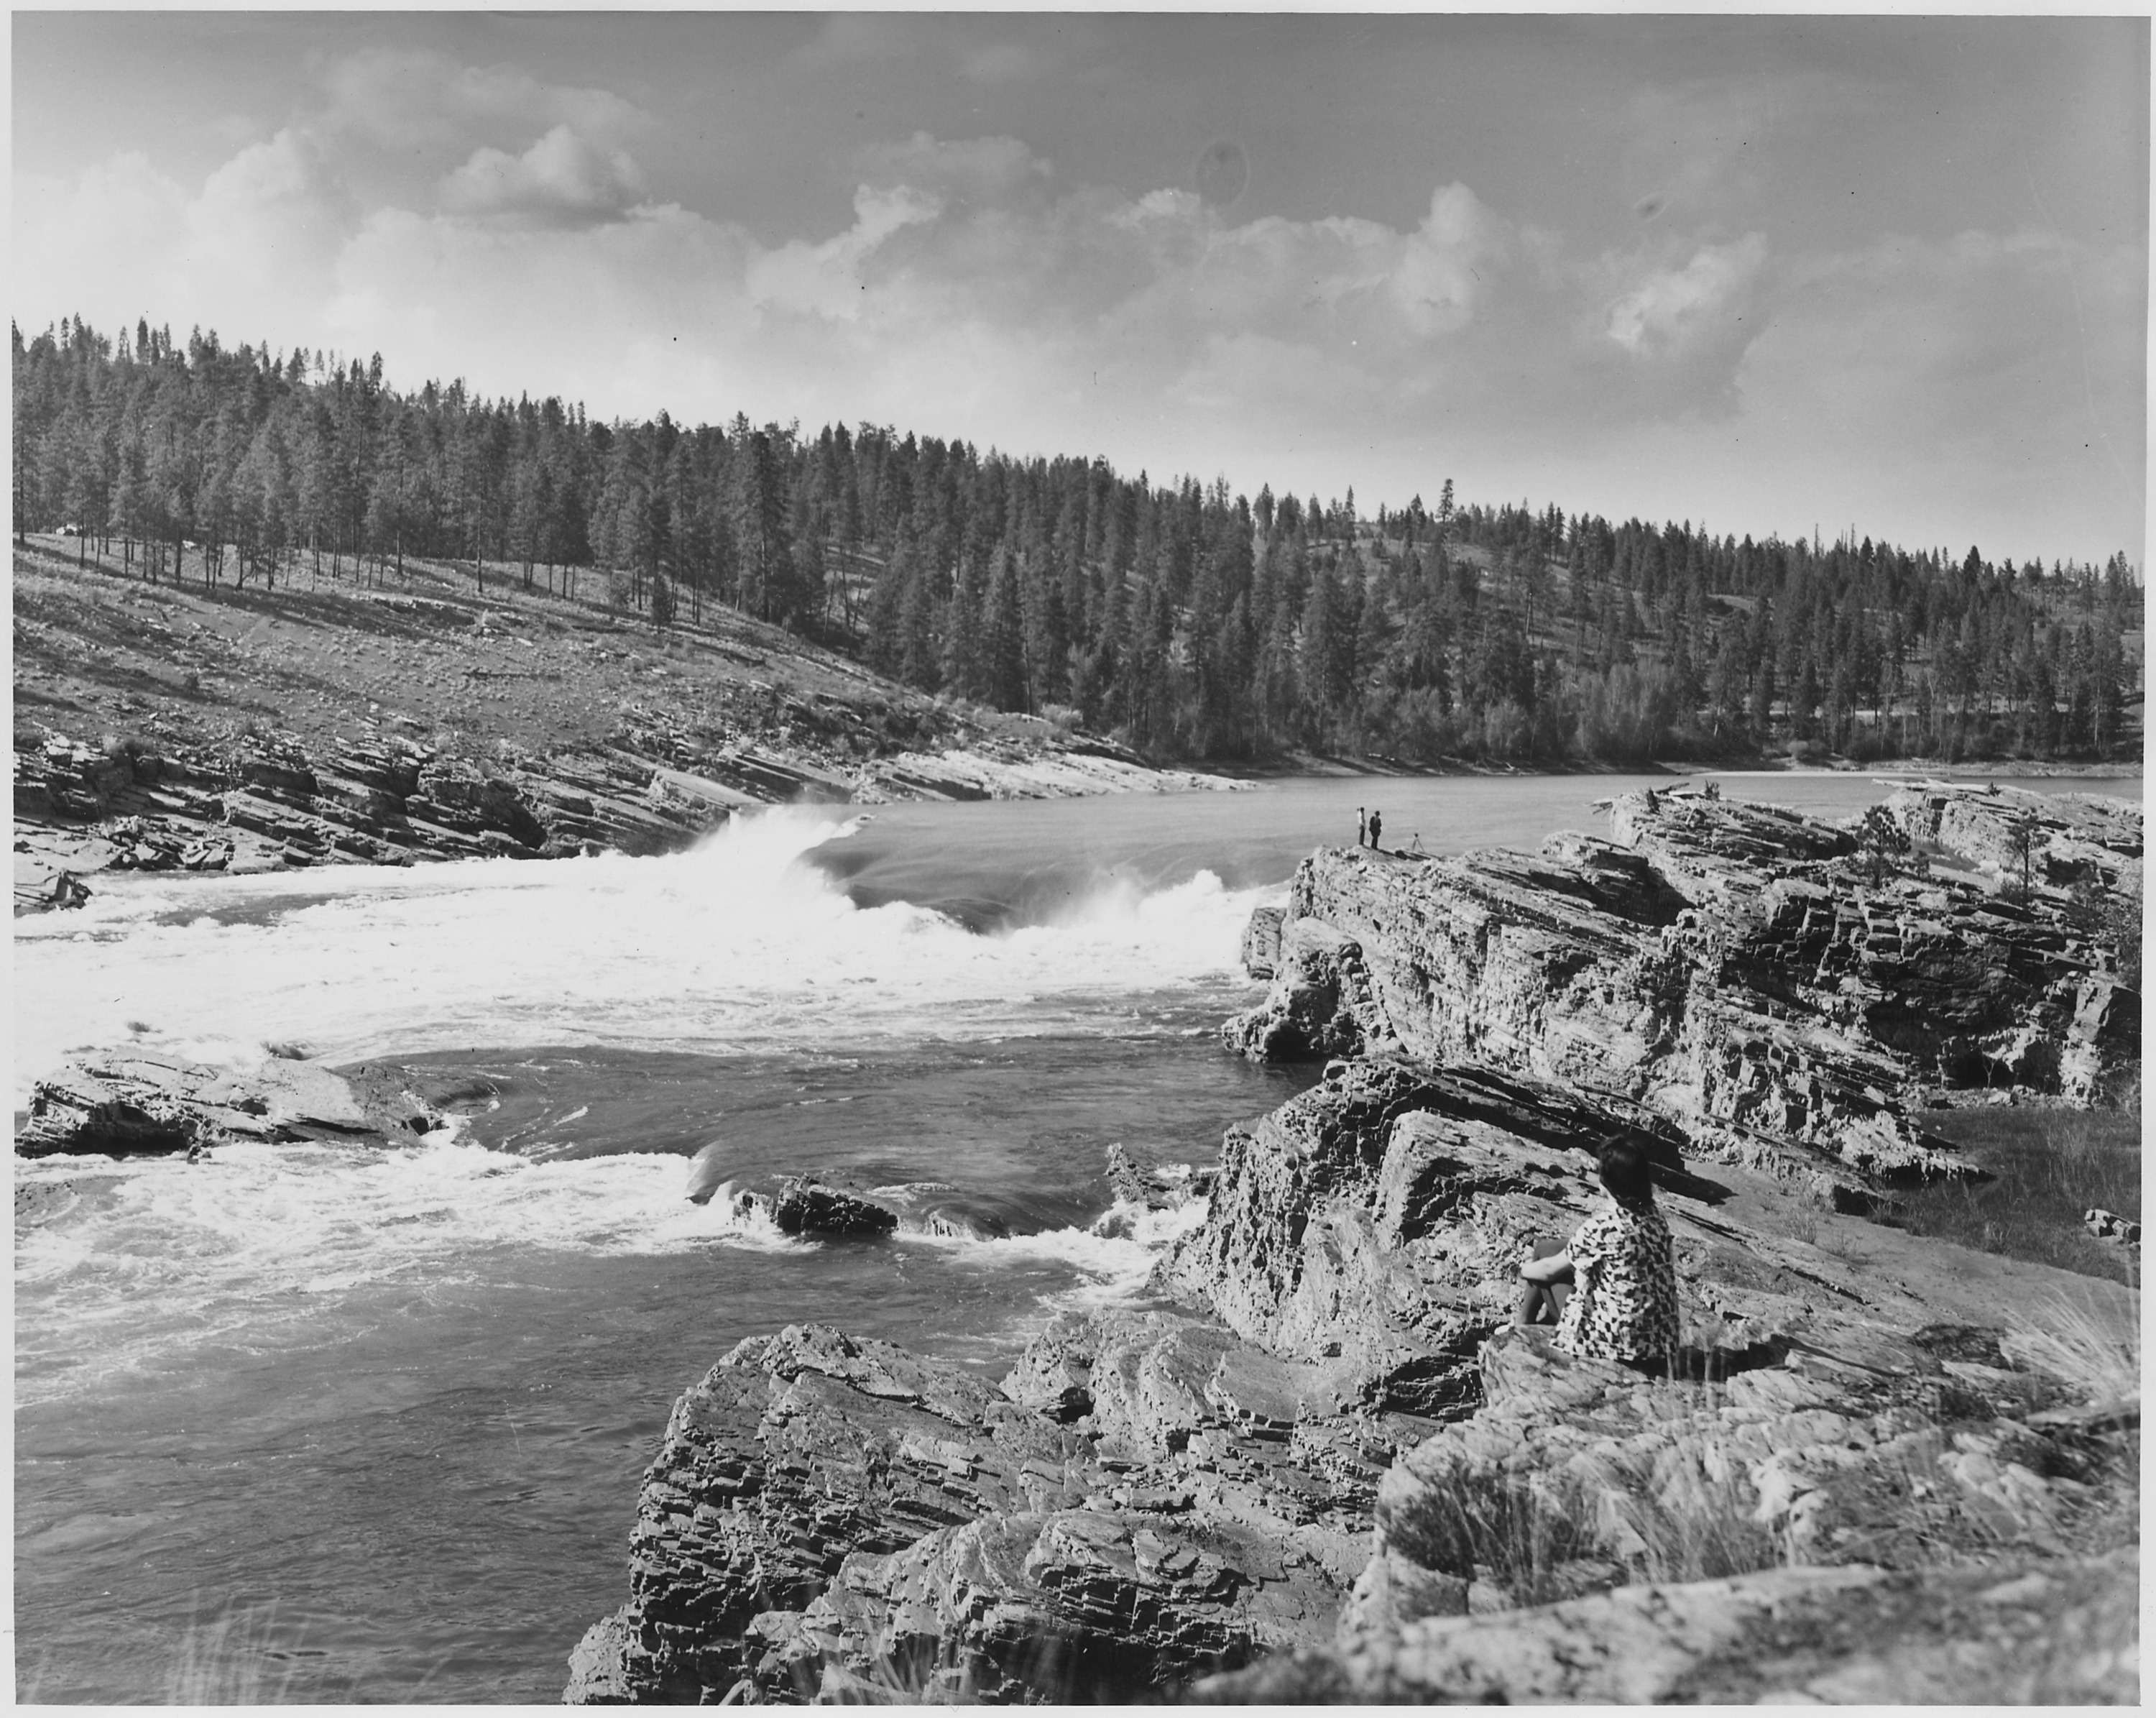 Kettle_Falls,_Columbia_River_-_NARA_-_29